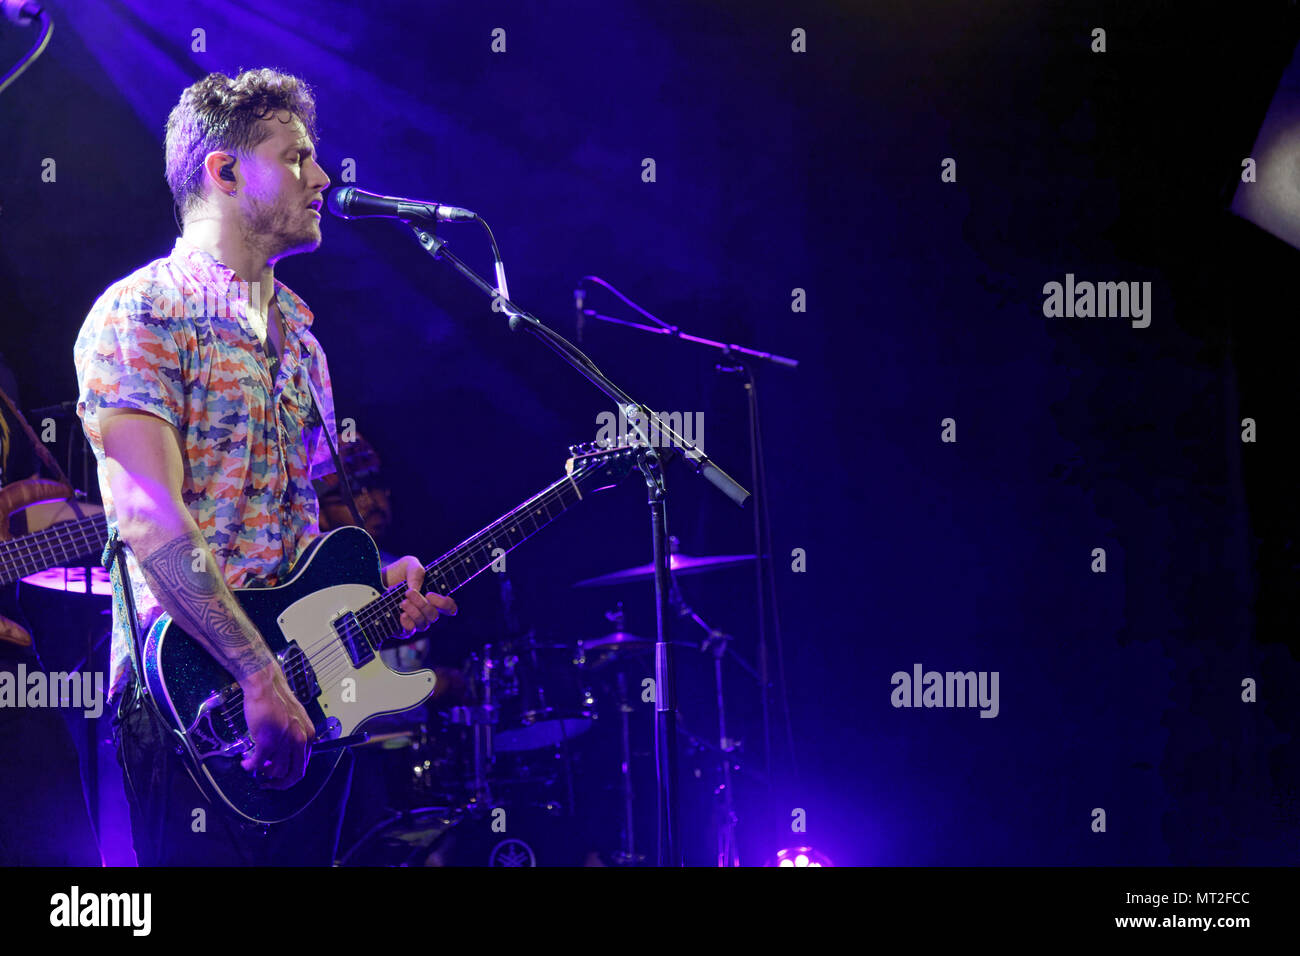 Ris-Orangis, May 27, 2018. The Delta Saints performed at the PLAN at Ris-Orangis, Essonne, near Paris, May 27, 2018, France Credit: Véronique PHITOUSSI/Alamy Live News - Stock Image